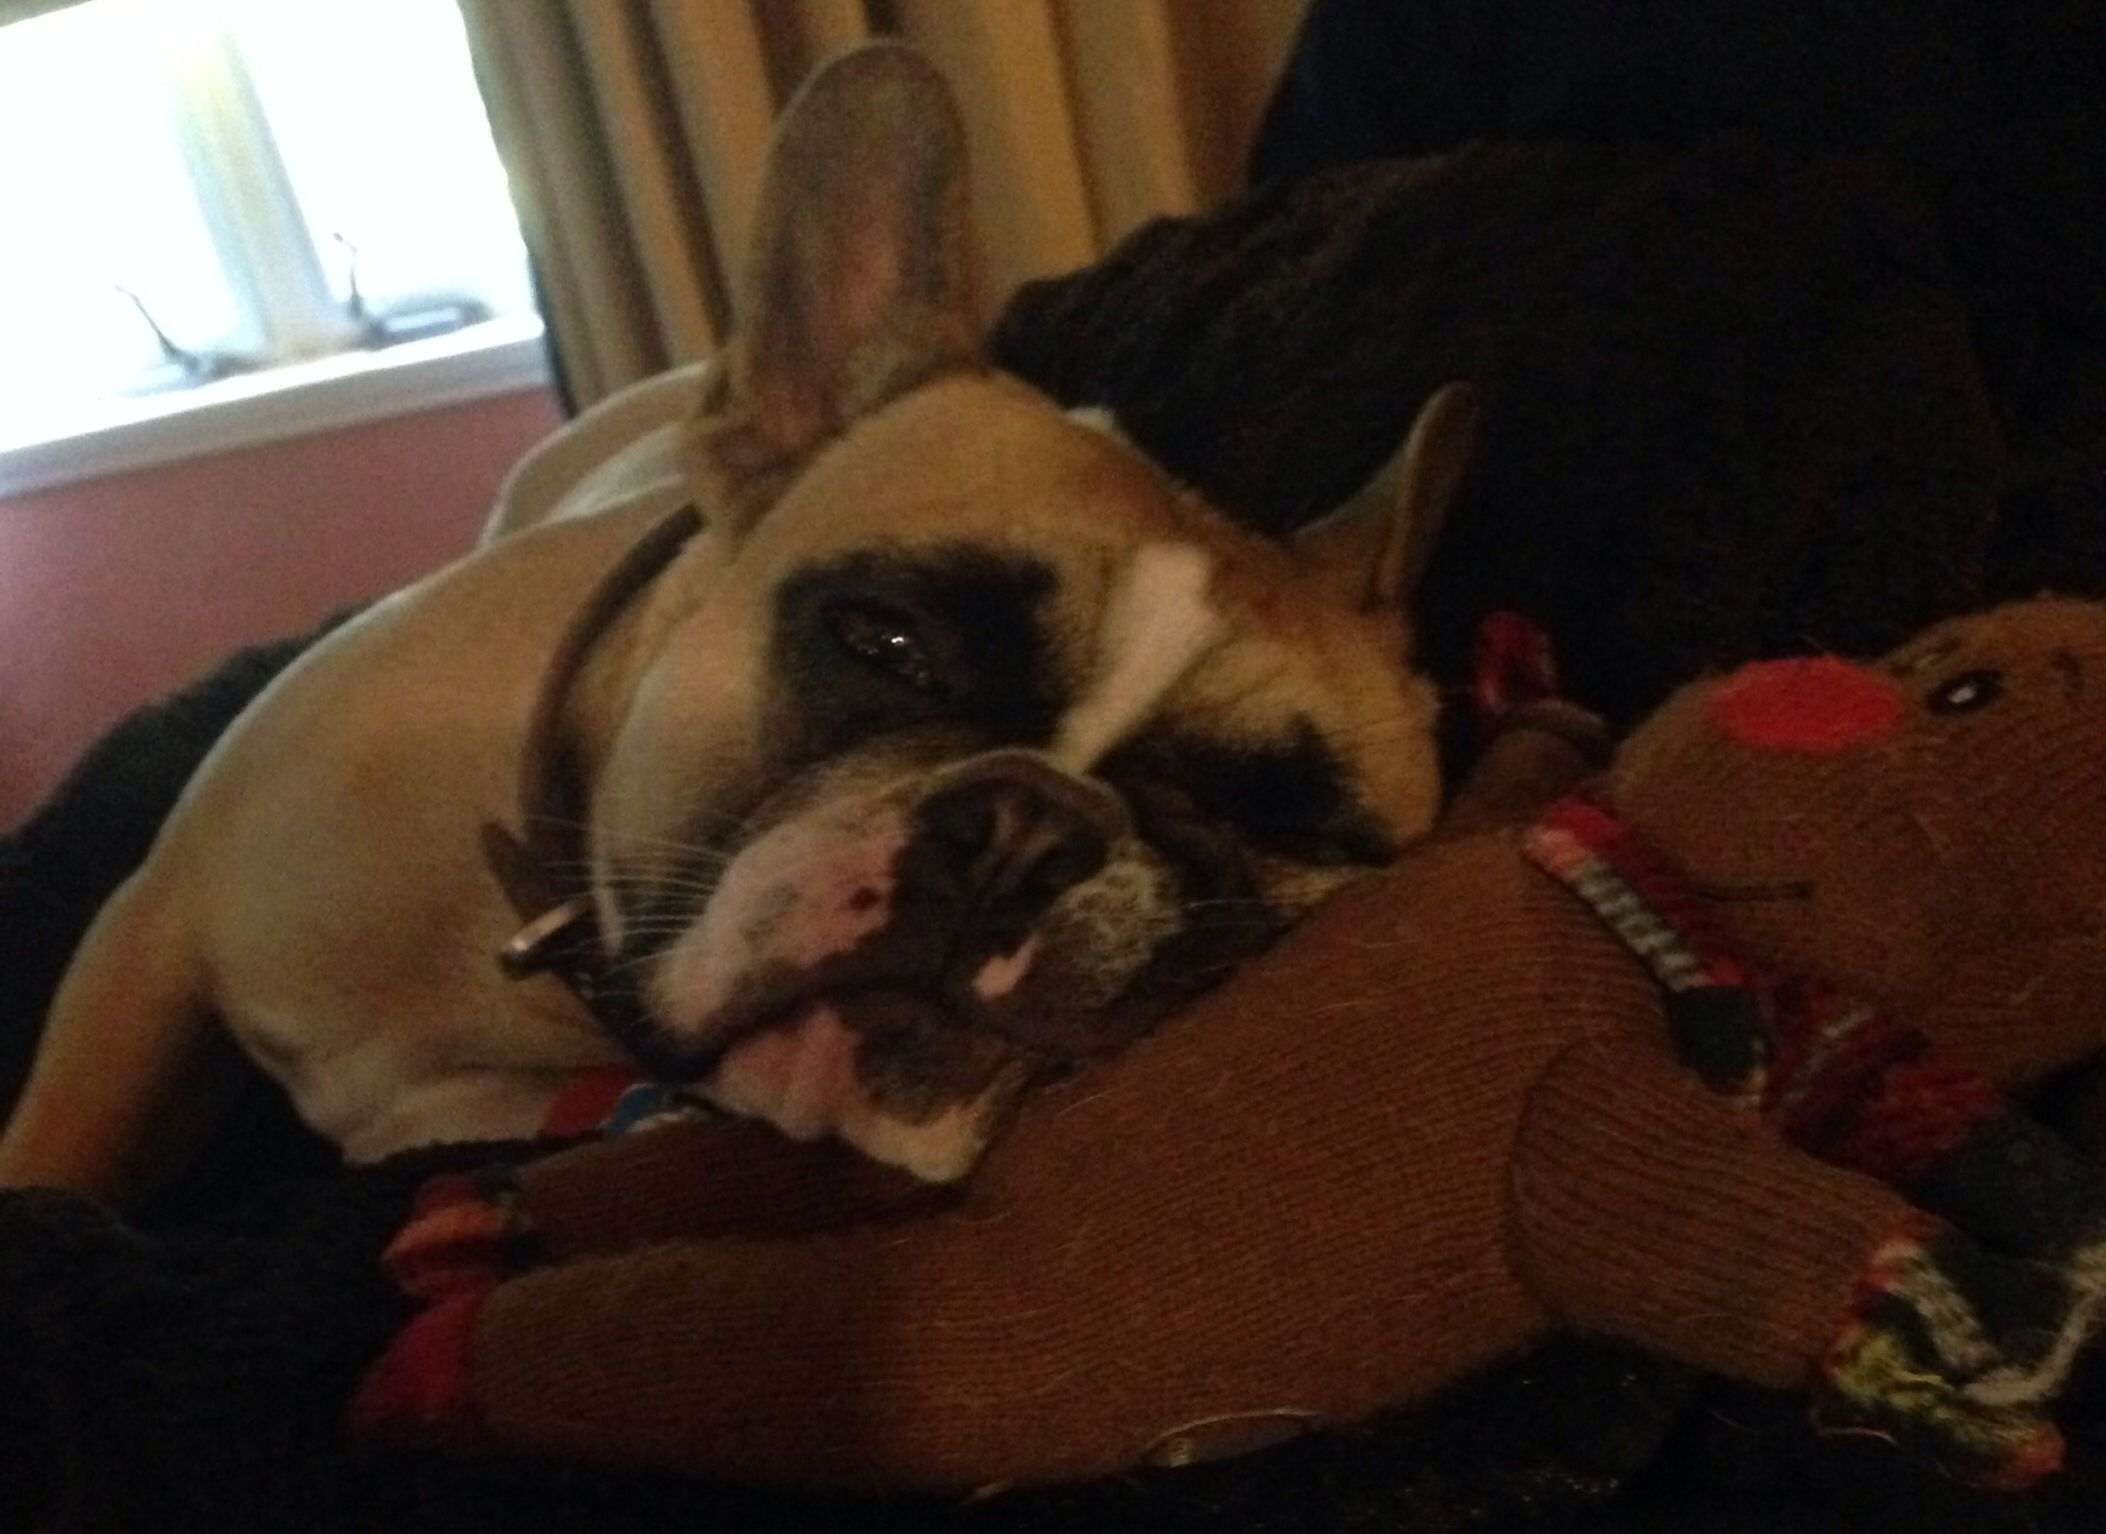 'You woke me up, this better be good', Francesca the French Bulldog is NOT Amused.